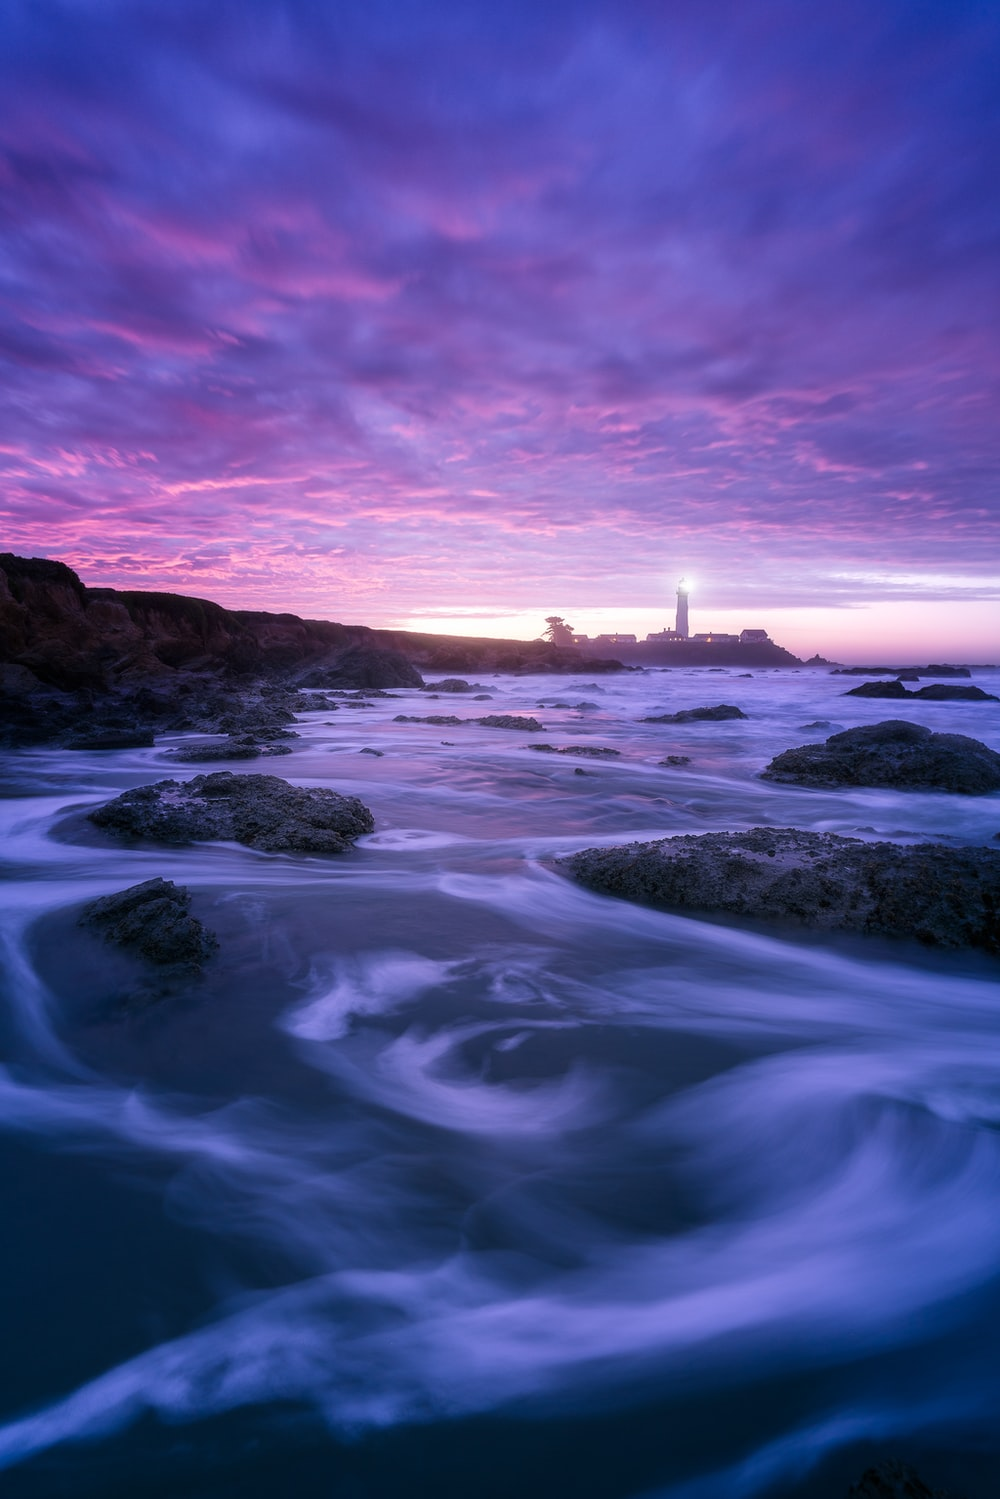 rocks and sea with silhouette of lighthouse in background